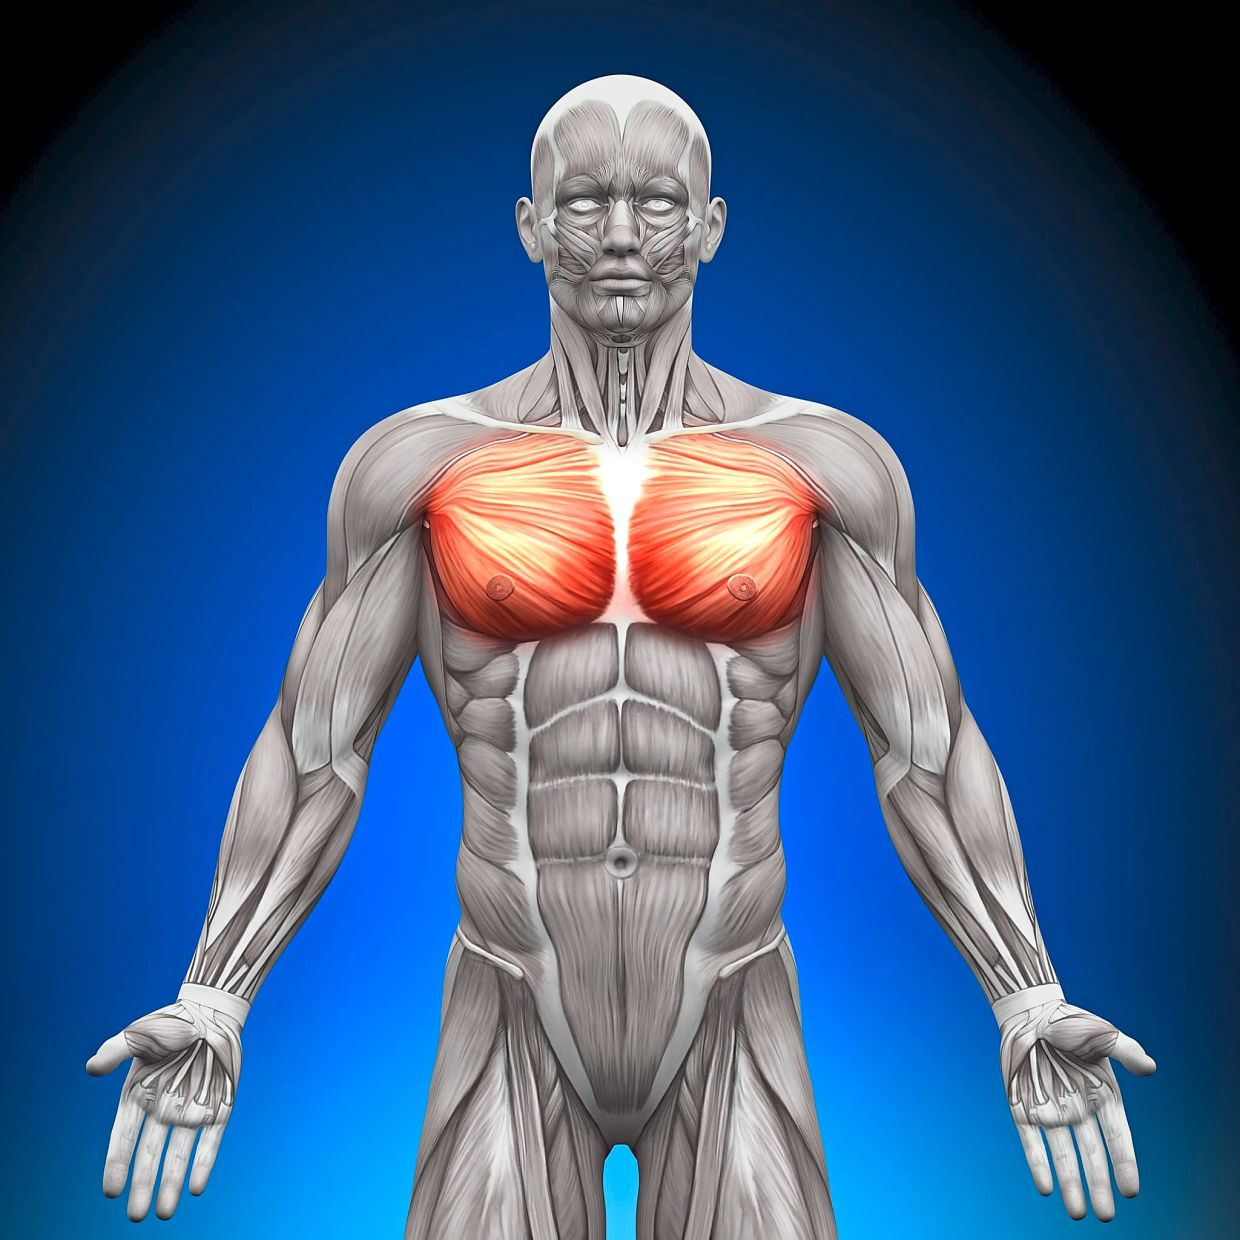 The pectoral muscles are one of the two parts of the body men are most concerned about, according to a study. The other is their forearms.